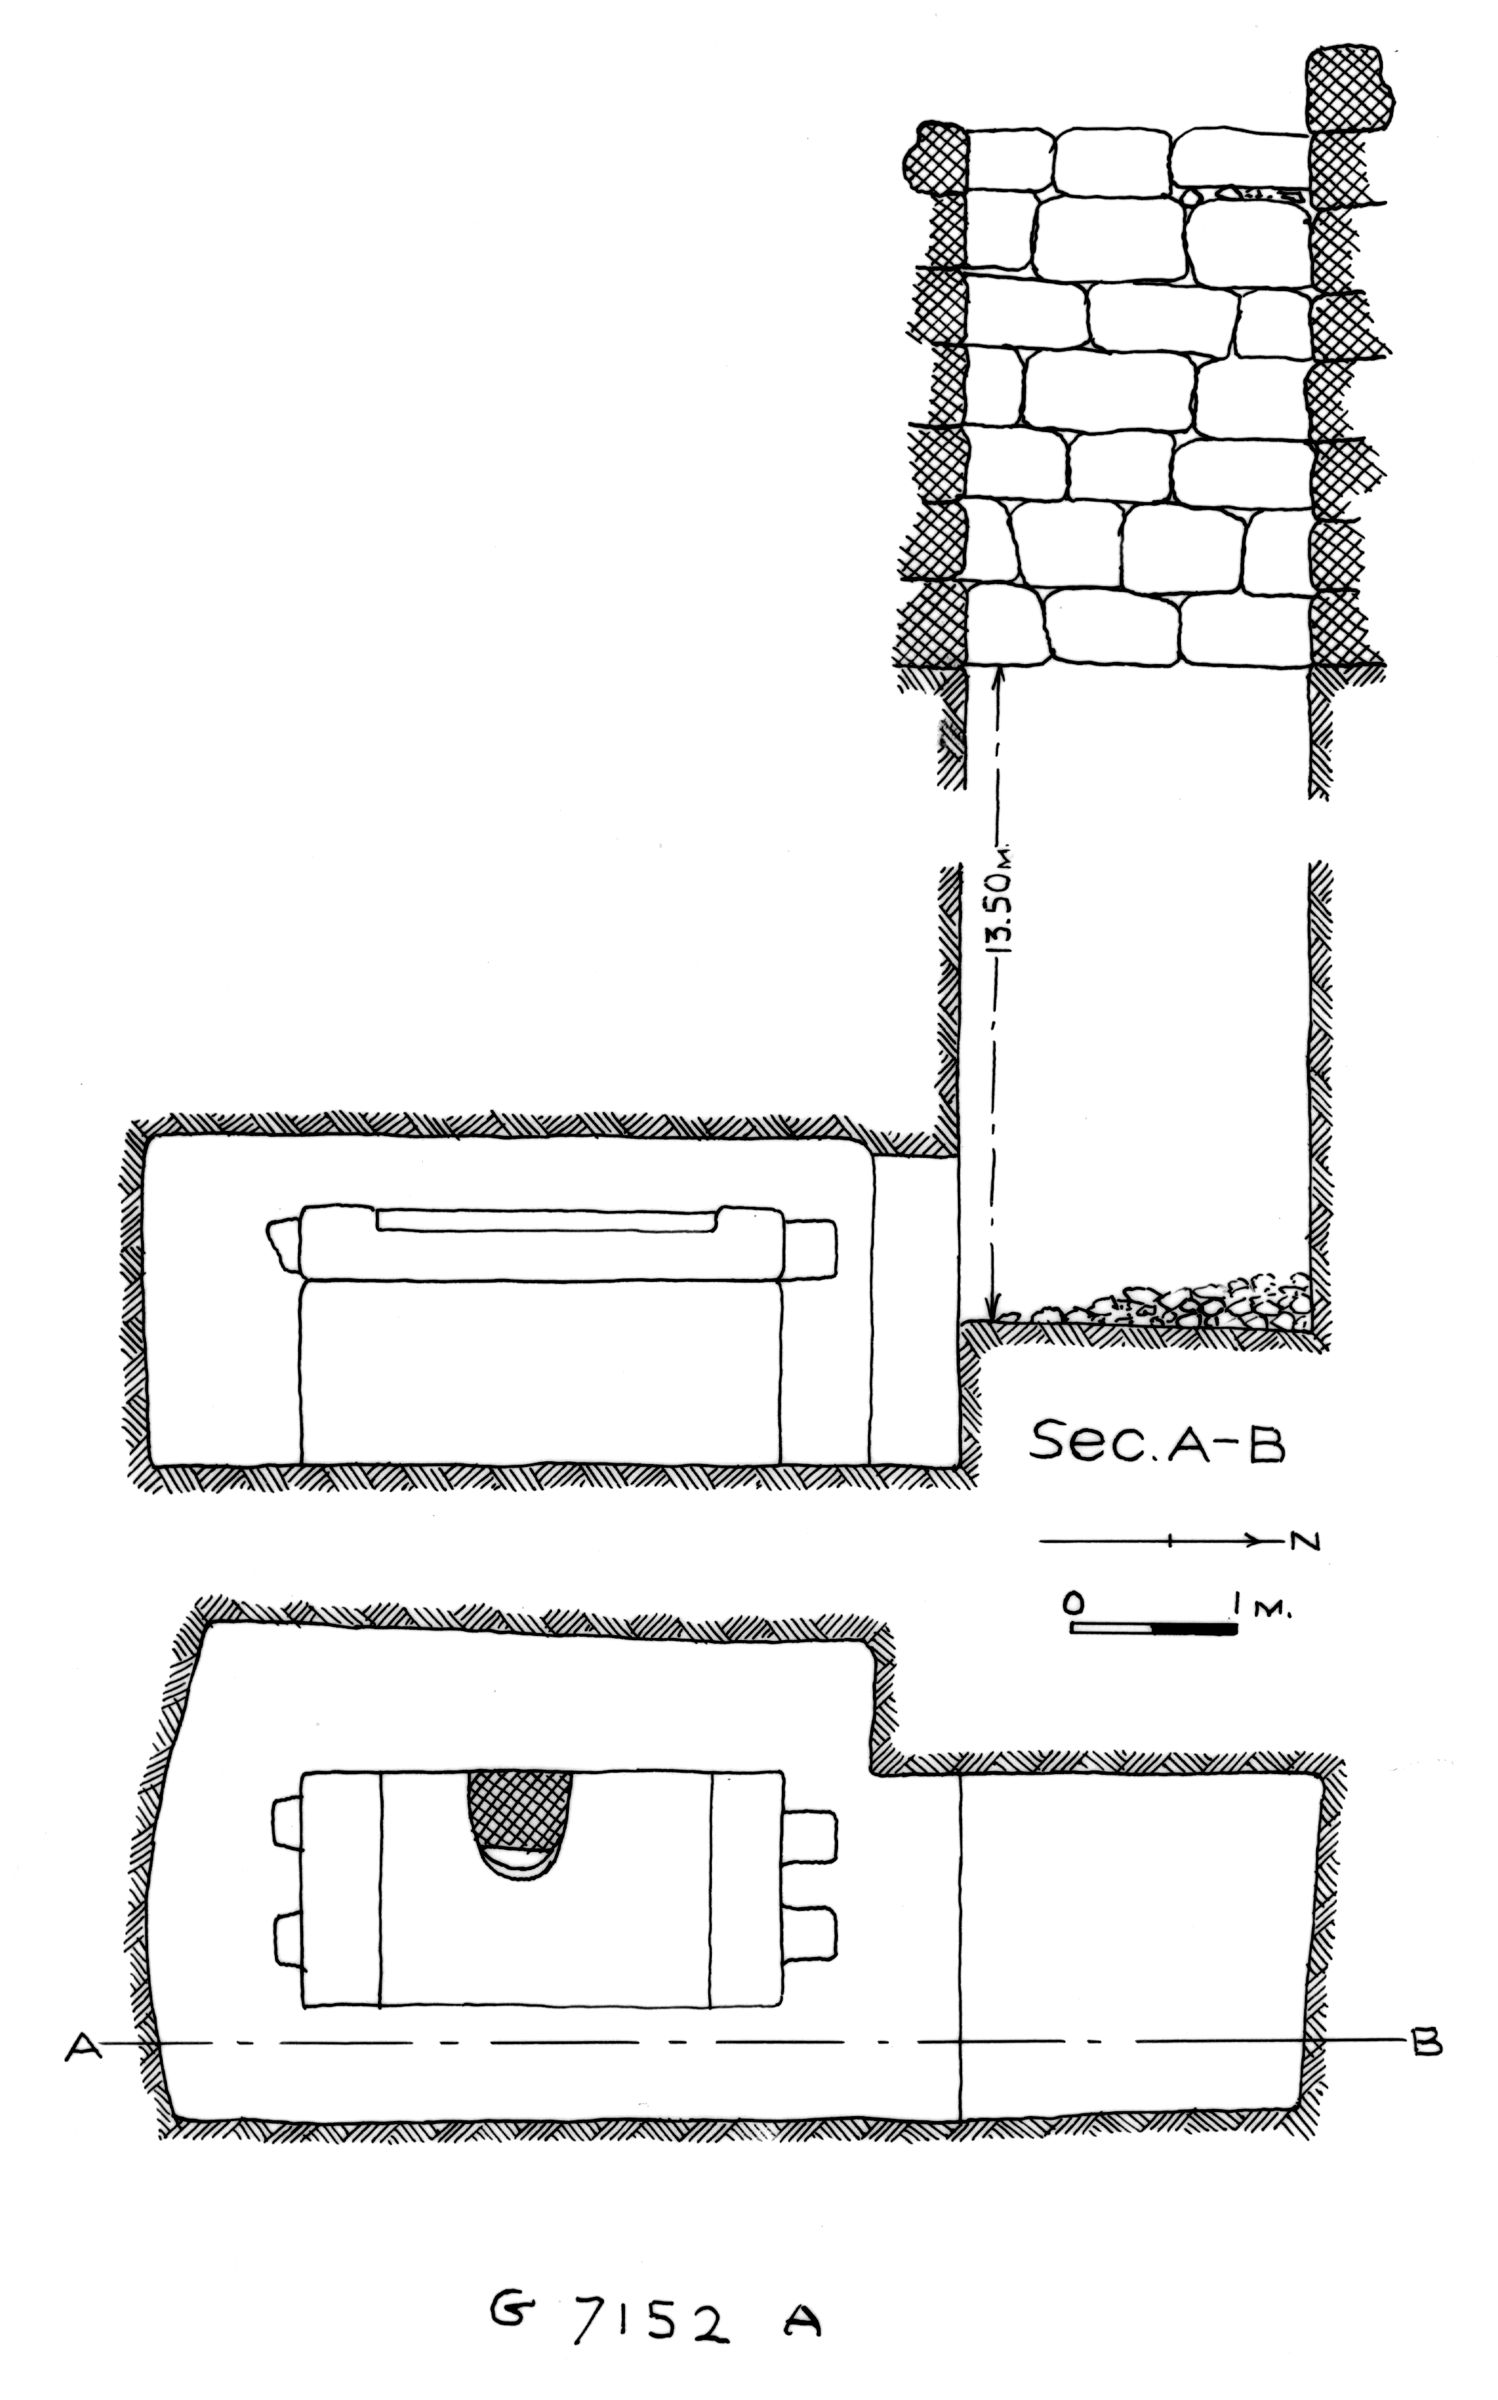 Maps and plans: G 7152, Shaft A